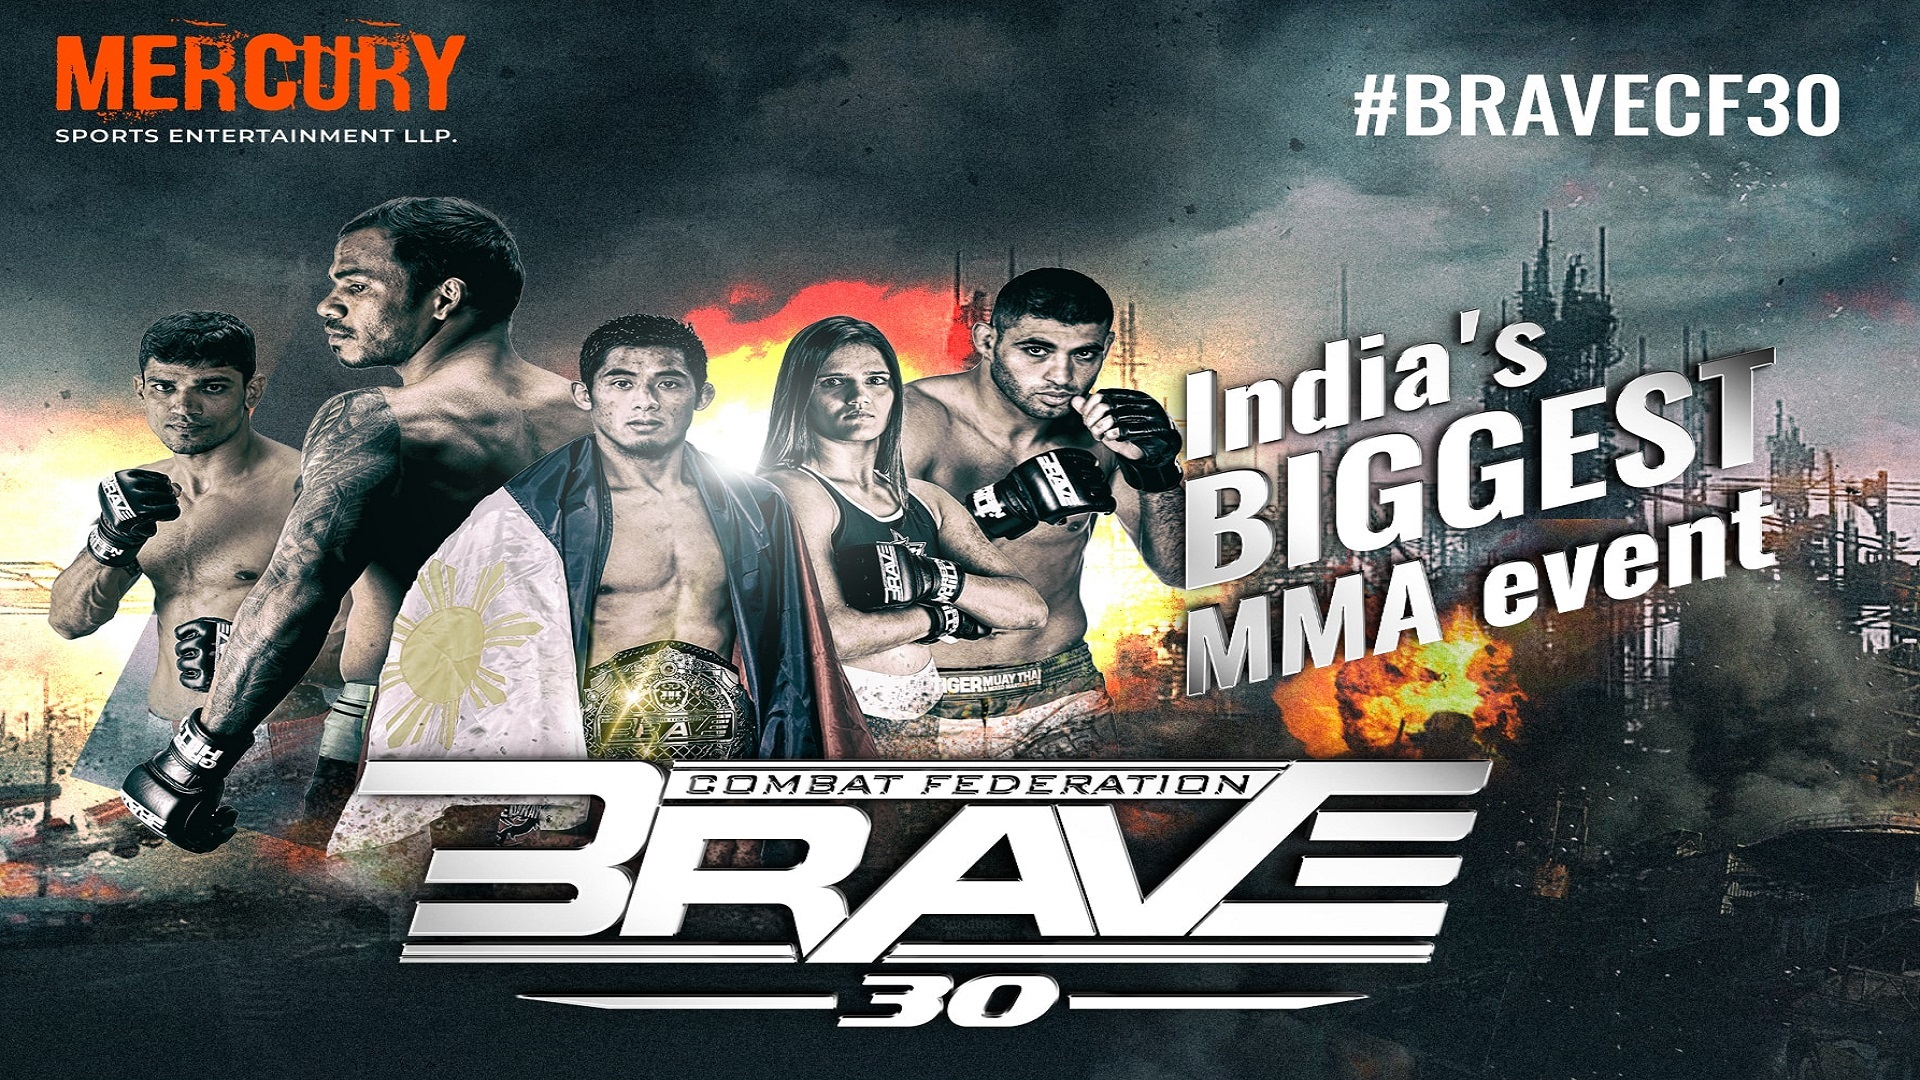 Brave-CF-30-Eight-Indian-Fighters-On-the-Card